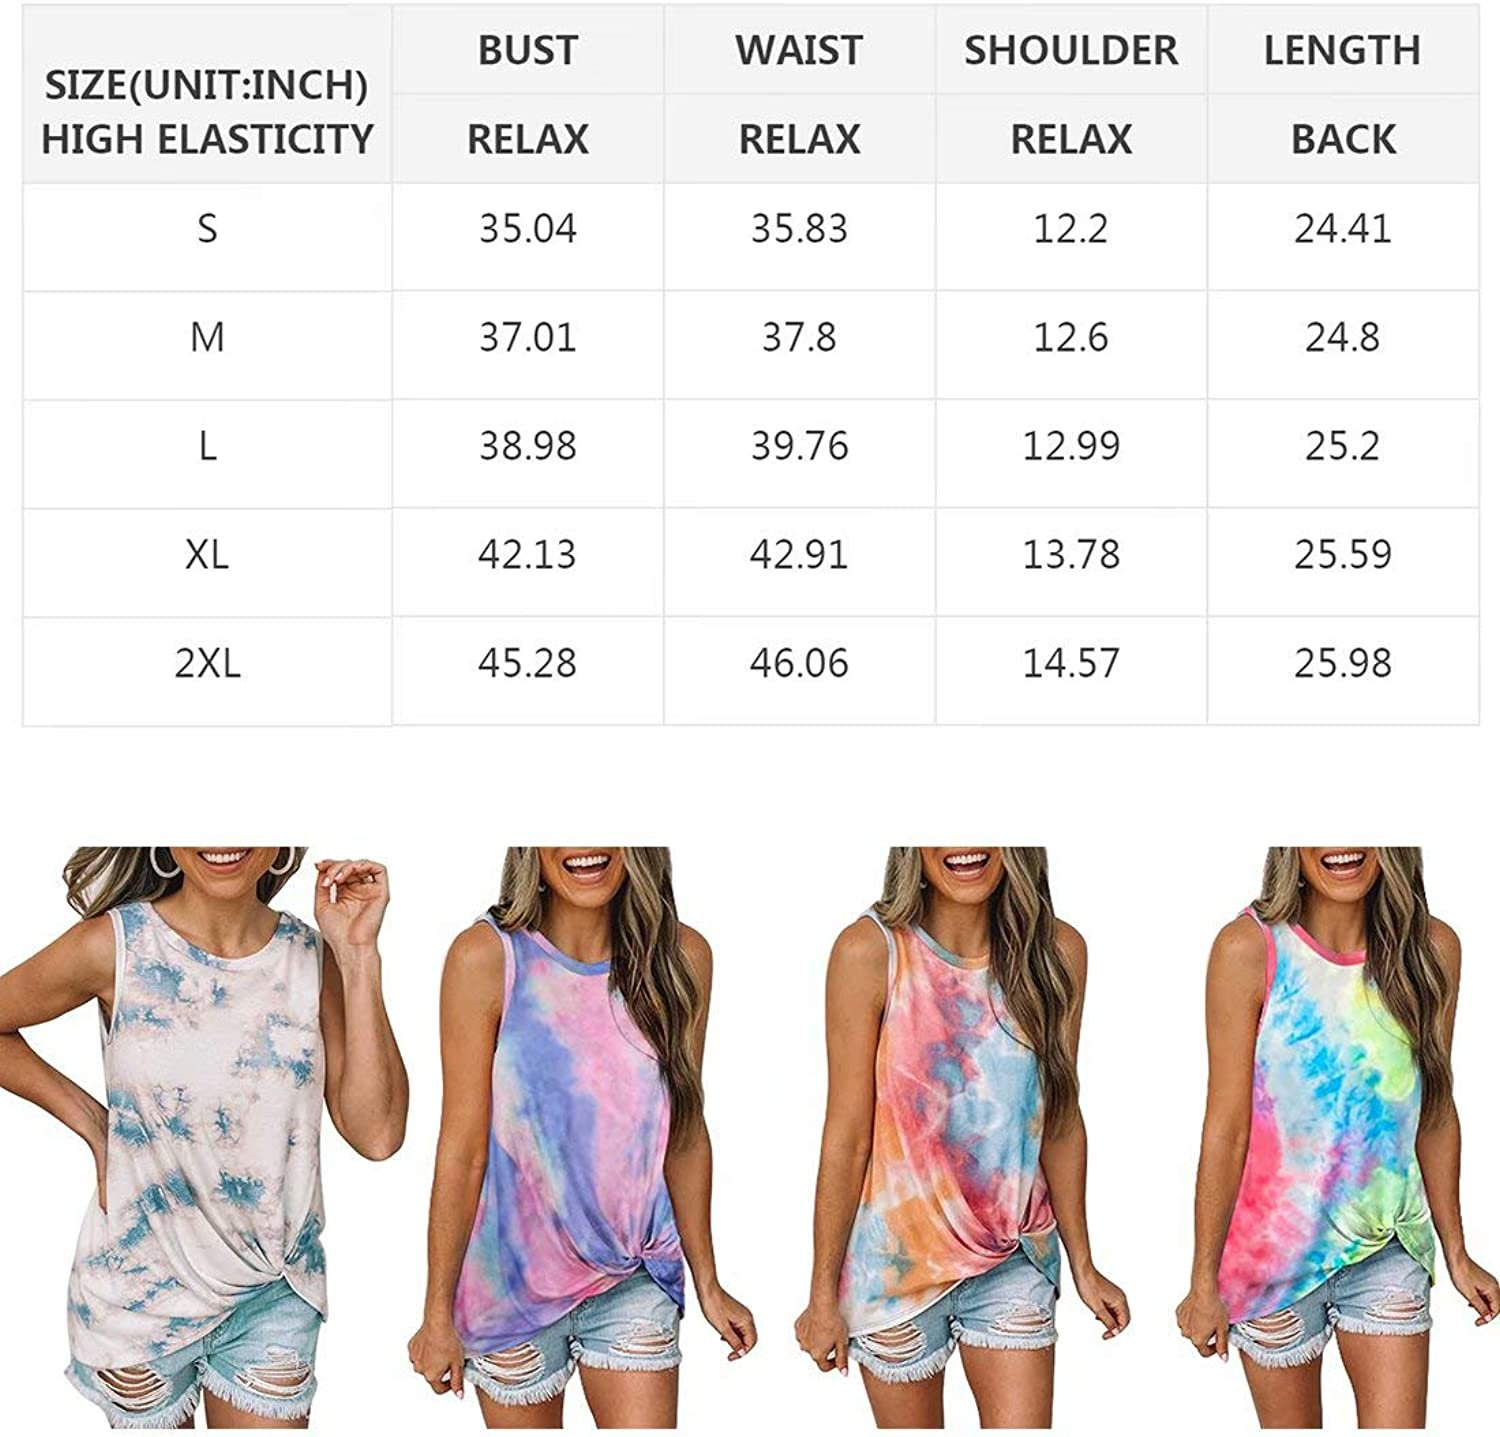 Biucly Womens Round Neck Tie-dye//Gradient Cami Tank Tops Casual Twist Loose Sleeveless Blouse Shirts